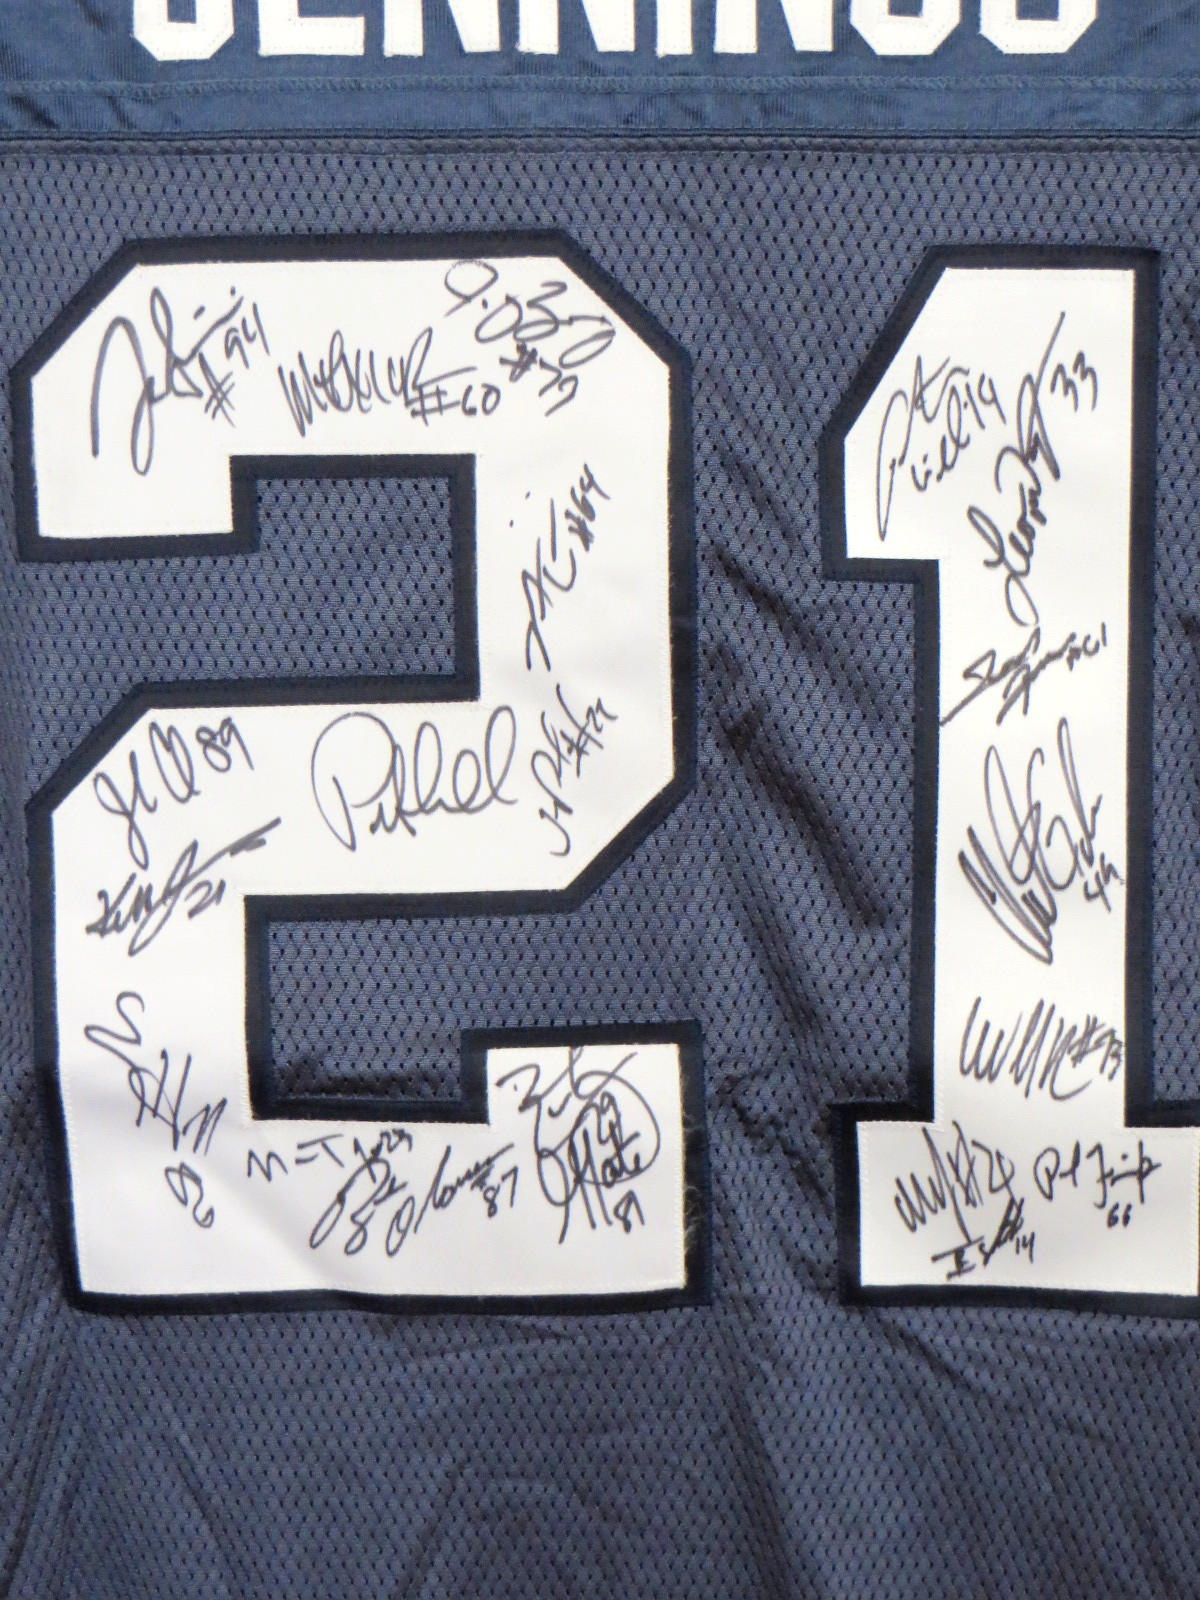 new products 7d3f0 5492b 2010 Seattle Seahawks team autographed authentic Reebok ...